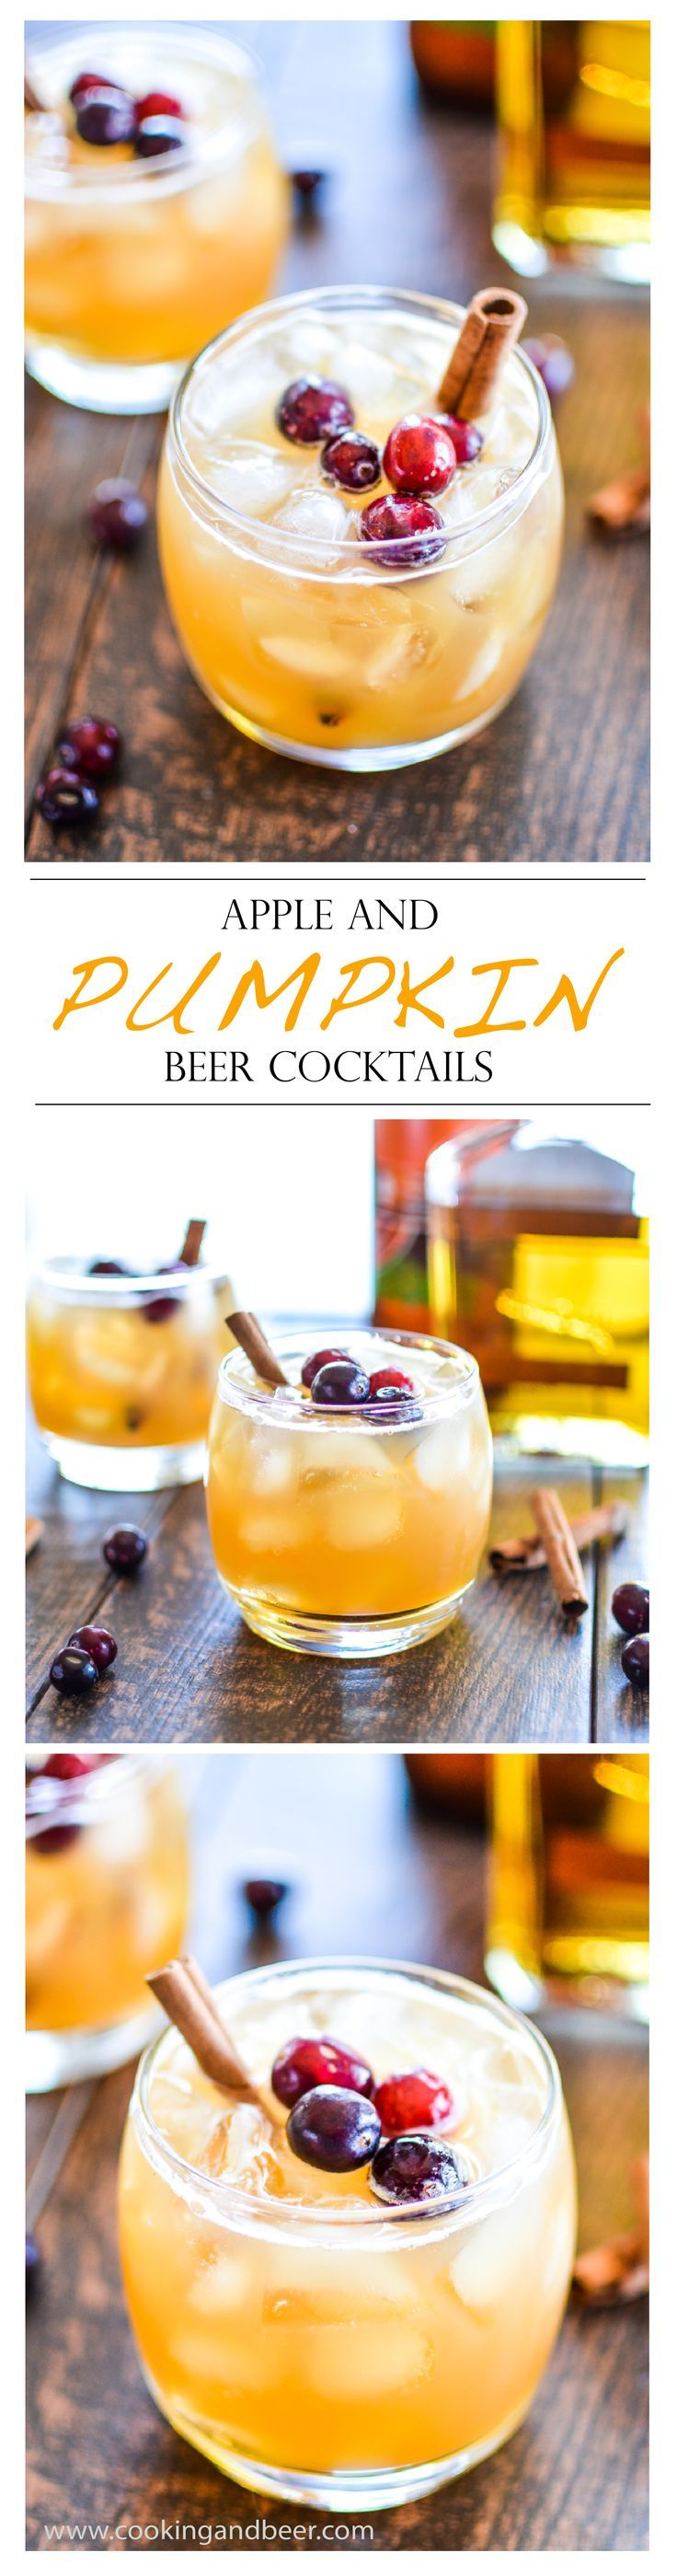 Apple and Pumpkin Beer Cocktail recipe. Try something a little different at your next Fall party!